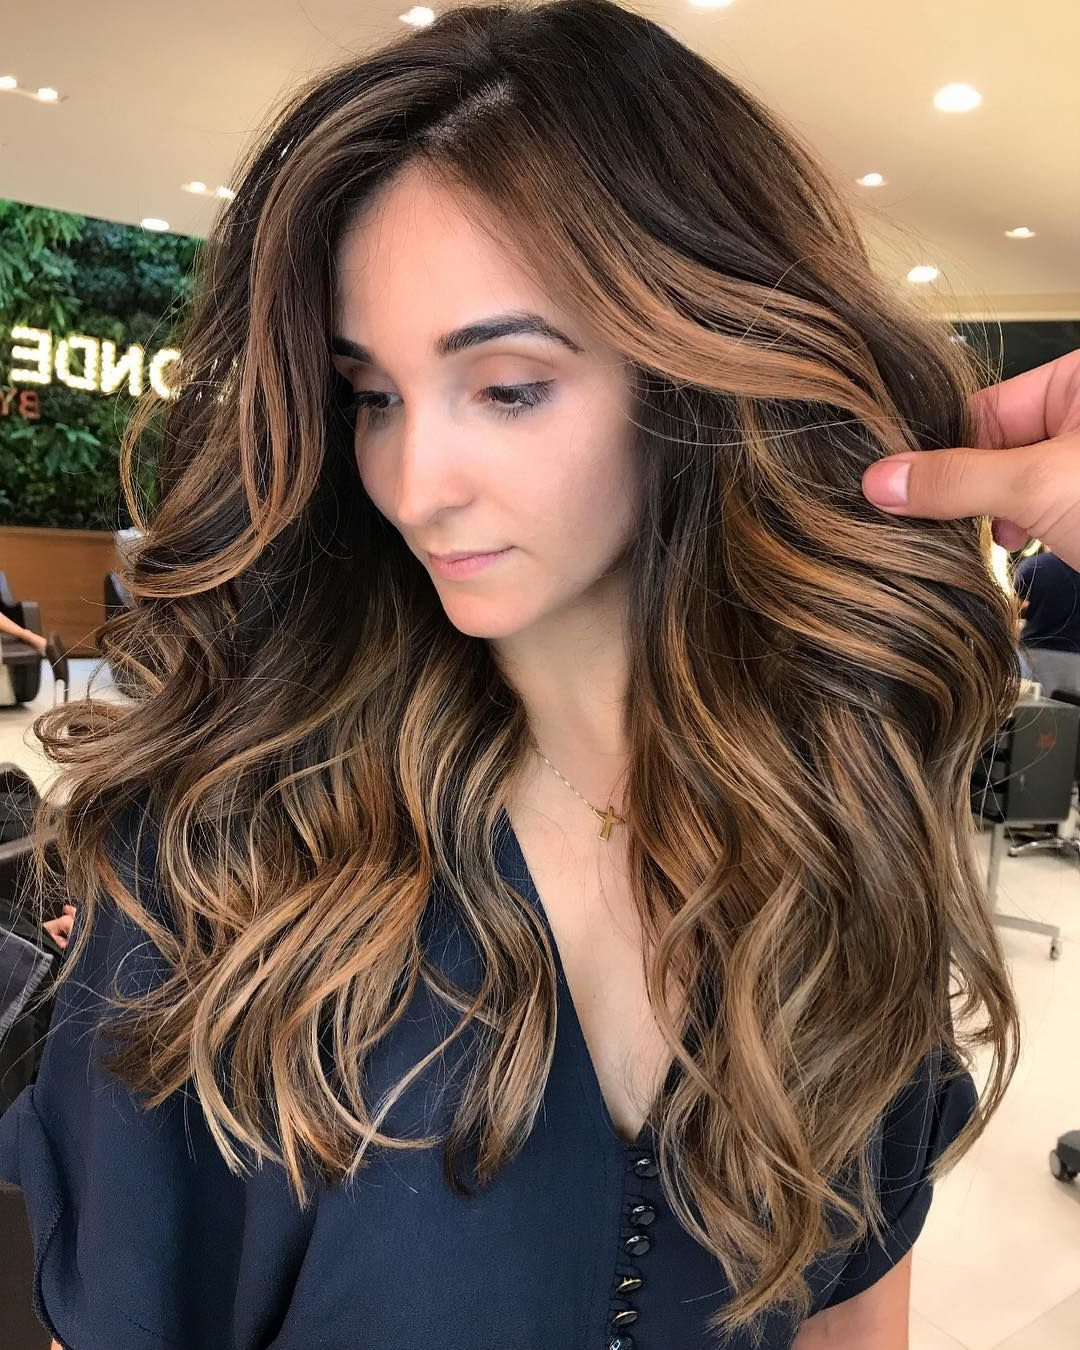 90 Best Long Layered Haircuts – Hairstyles For Long Hair 2019 Intended For Well Liked Full Voluminous Layers For Long Hairstyles (Gallery 2 of 20)